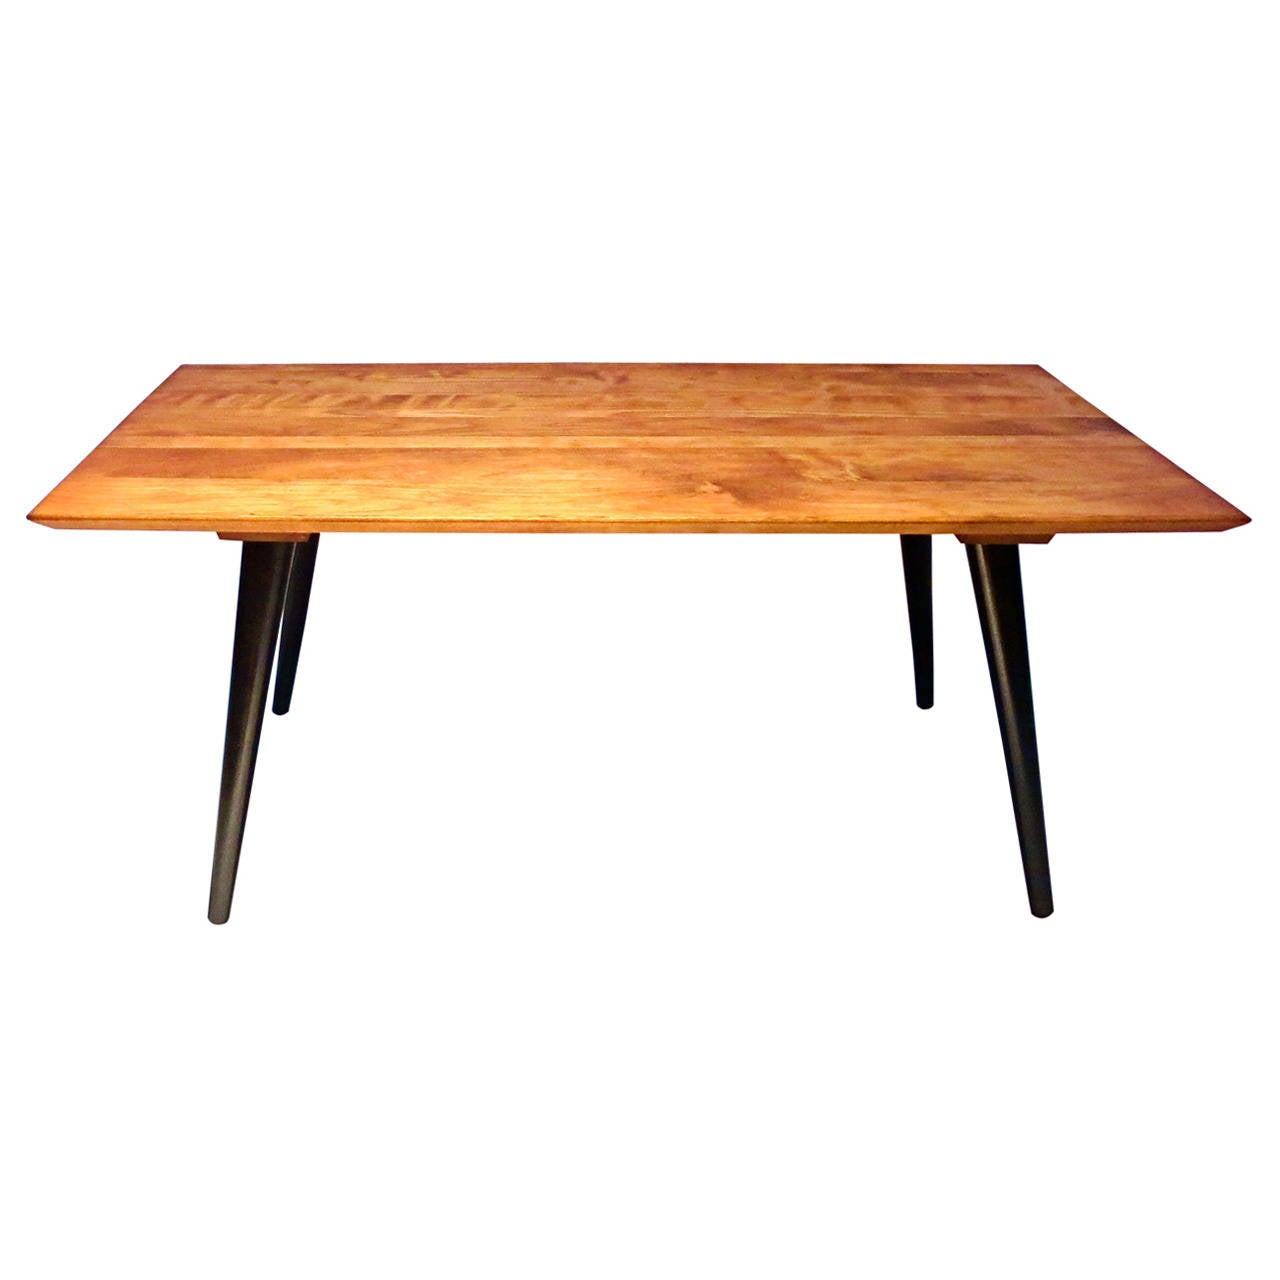 American Modern Small Coffee Table By Paul Mccobb For Winchendon Early Prod At 1stdibs